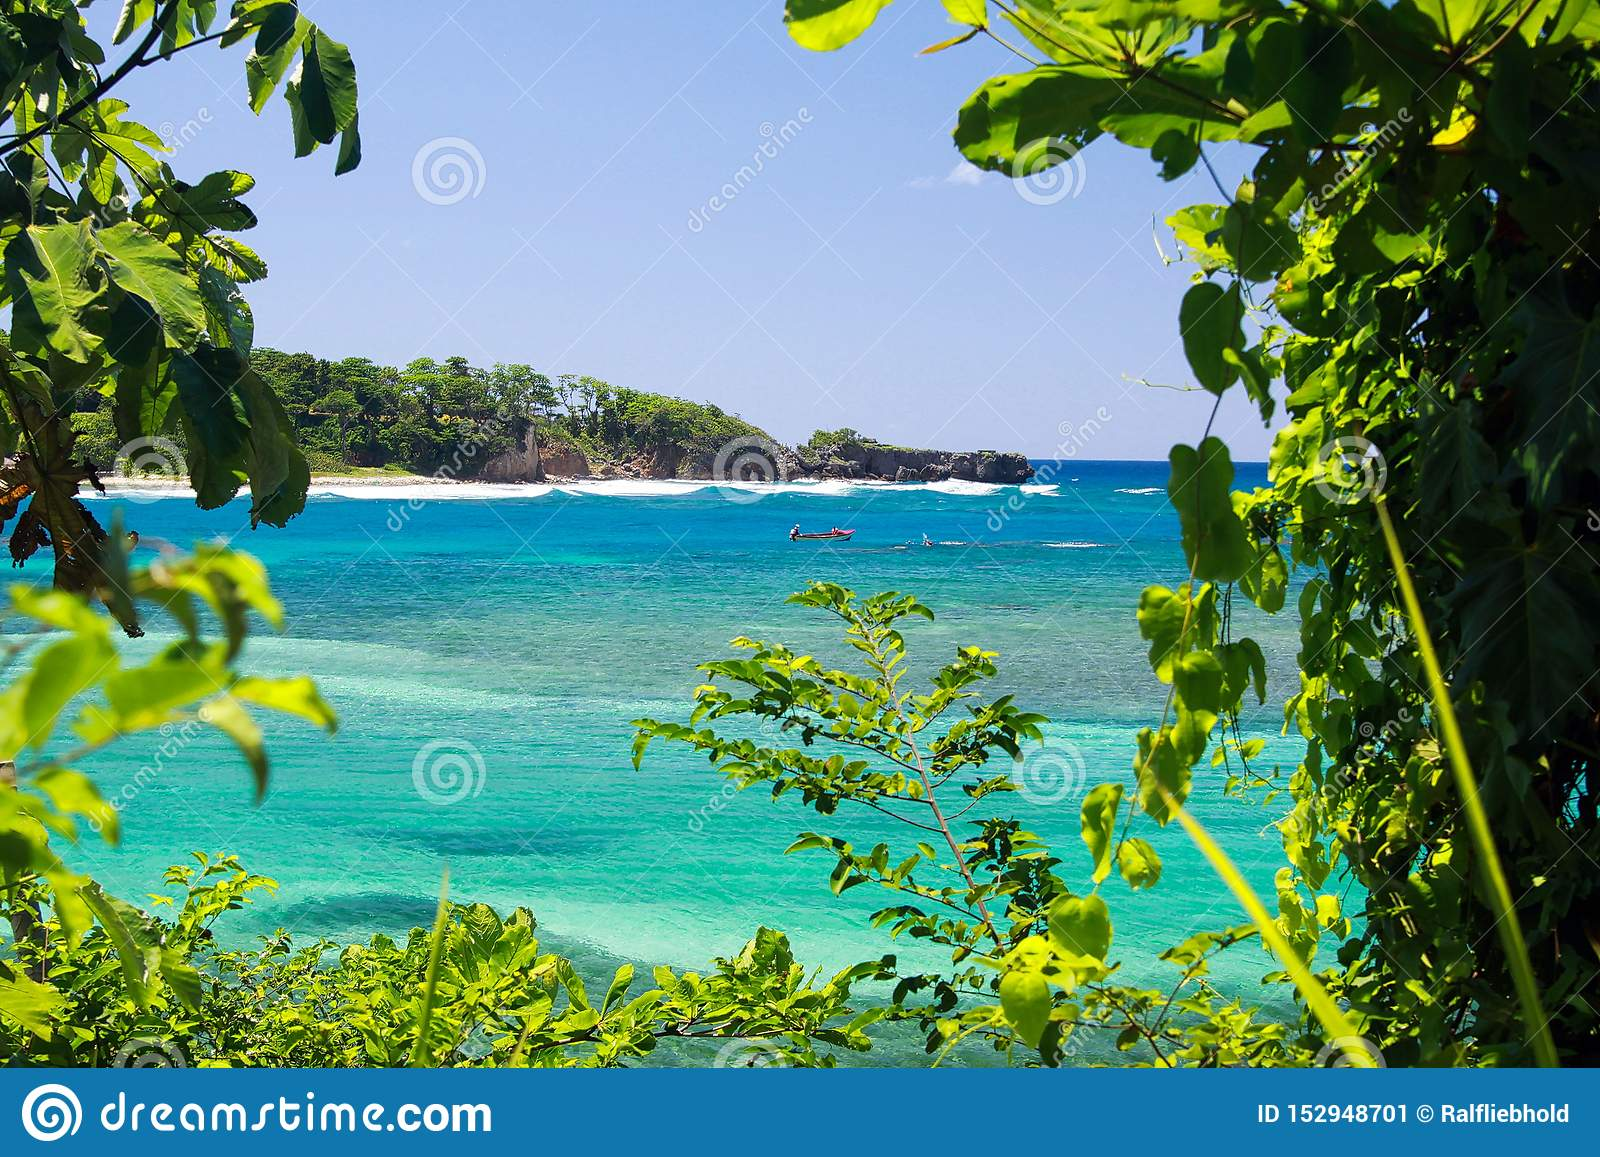 View On Secluded Islet With White Sand And Turquoise Water